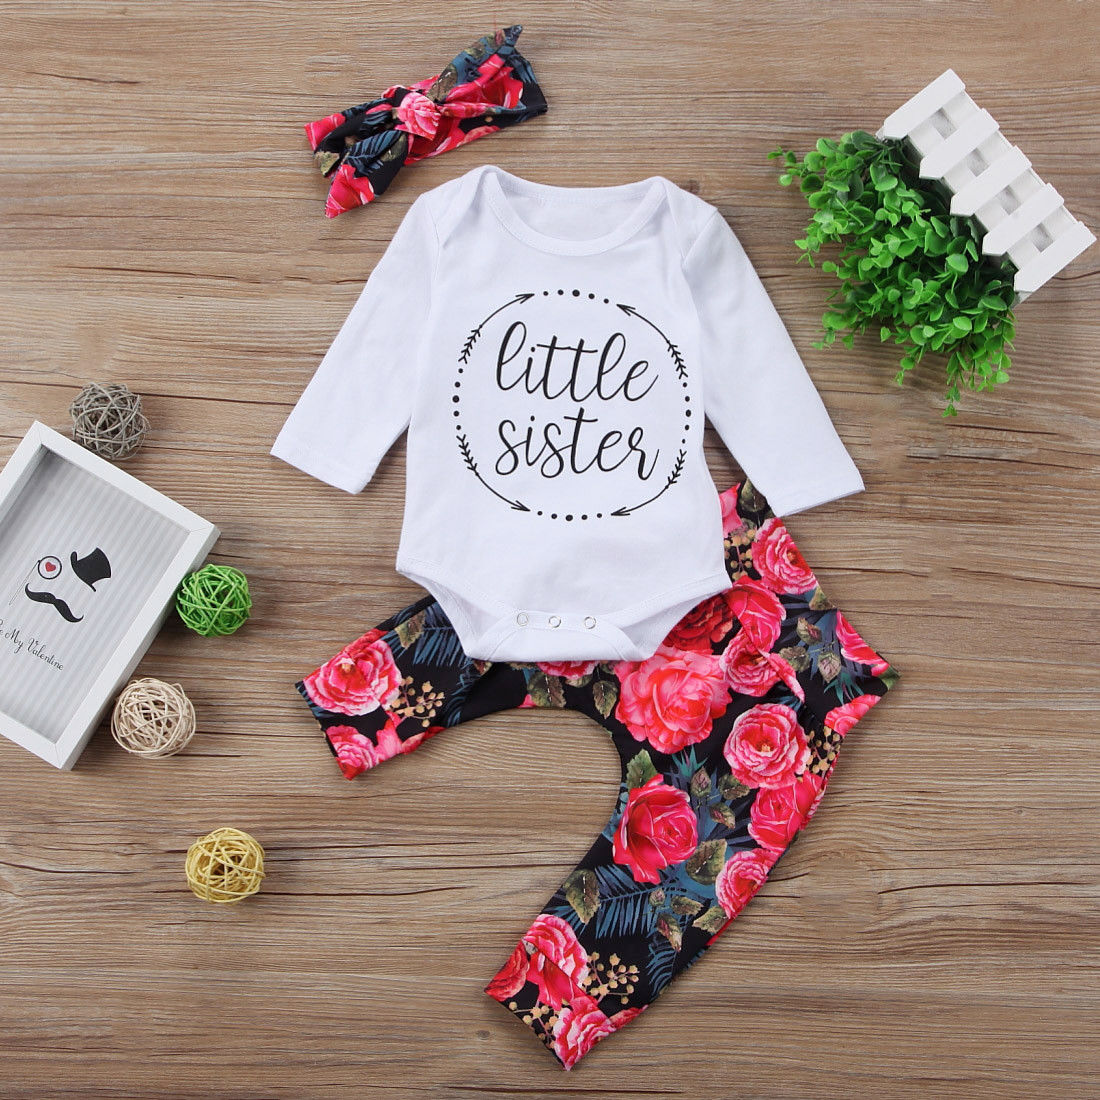 Long Sleeve Romper Flower Pants Headbands Cotton 3Pcs Outfits Clothing Set Newborn Toddler Baby Girls Clothes Sets Tops